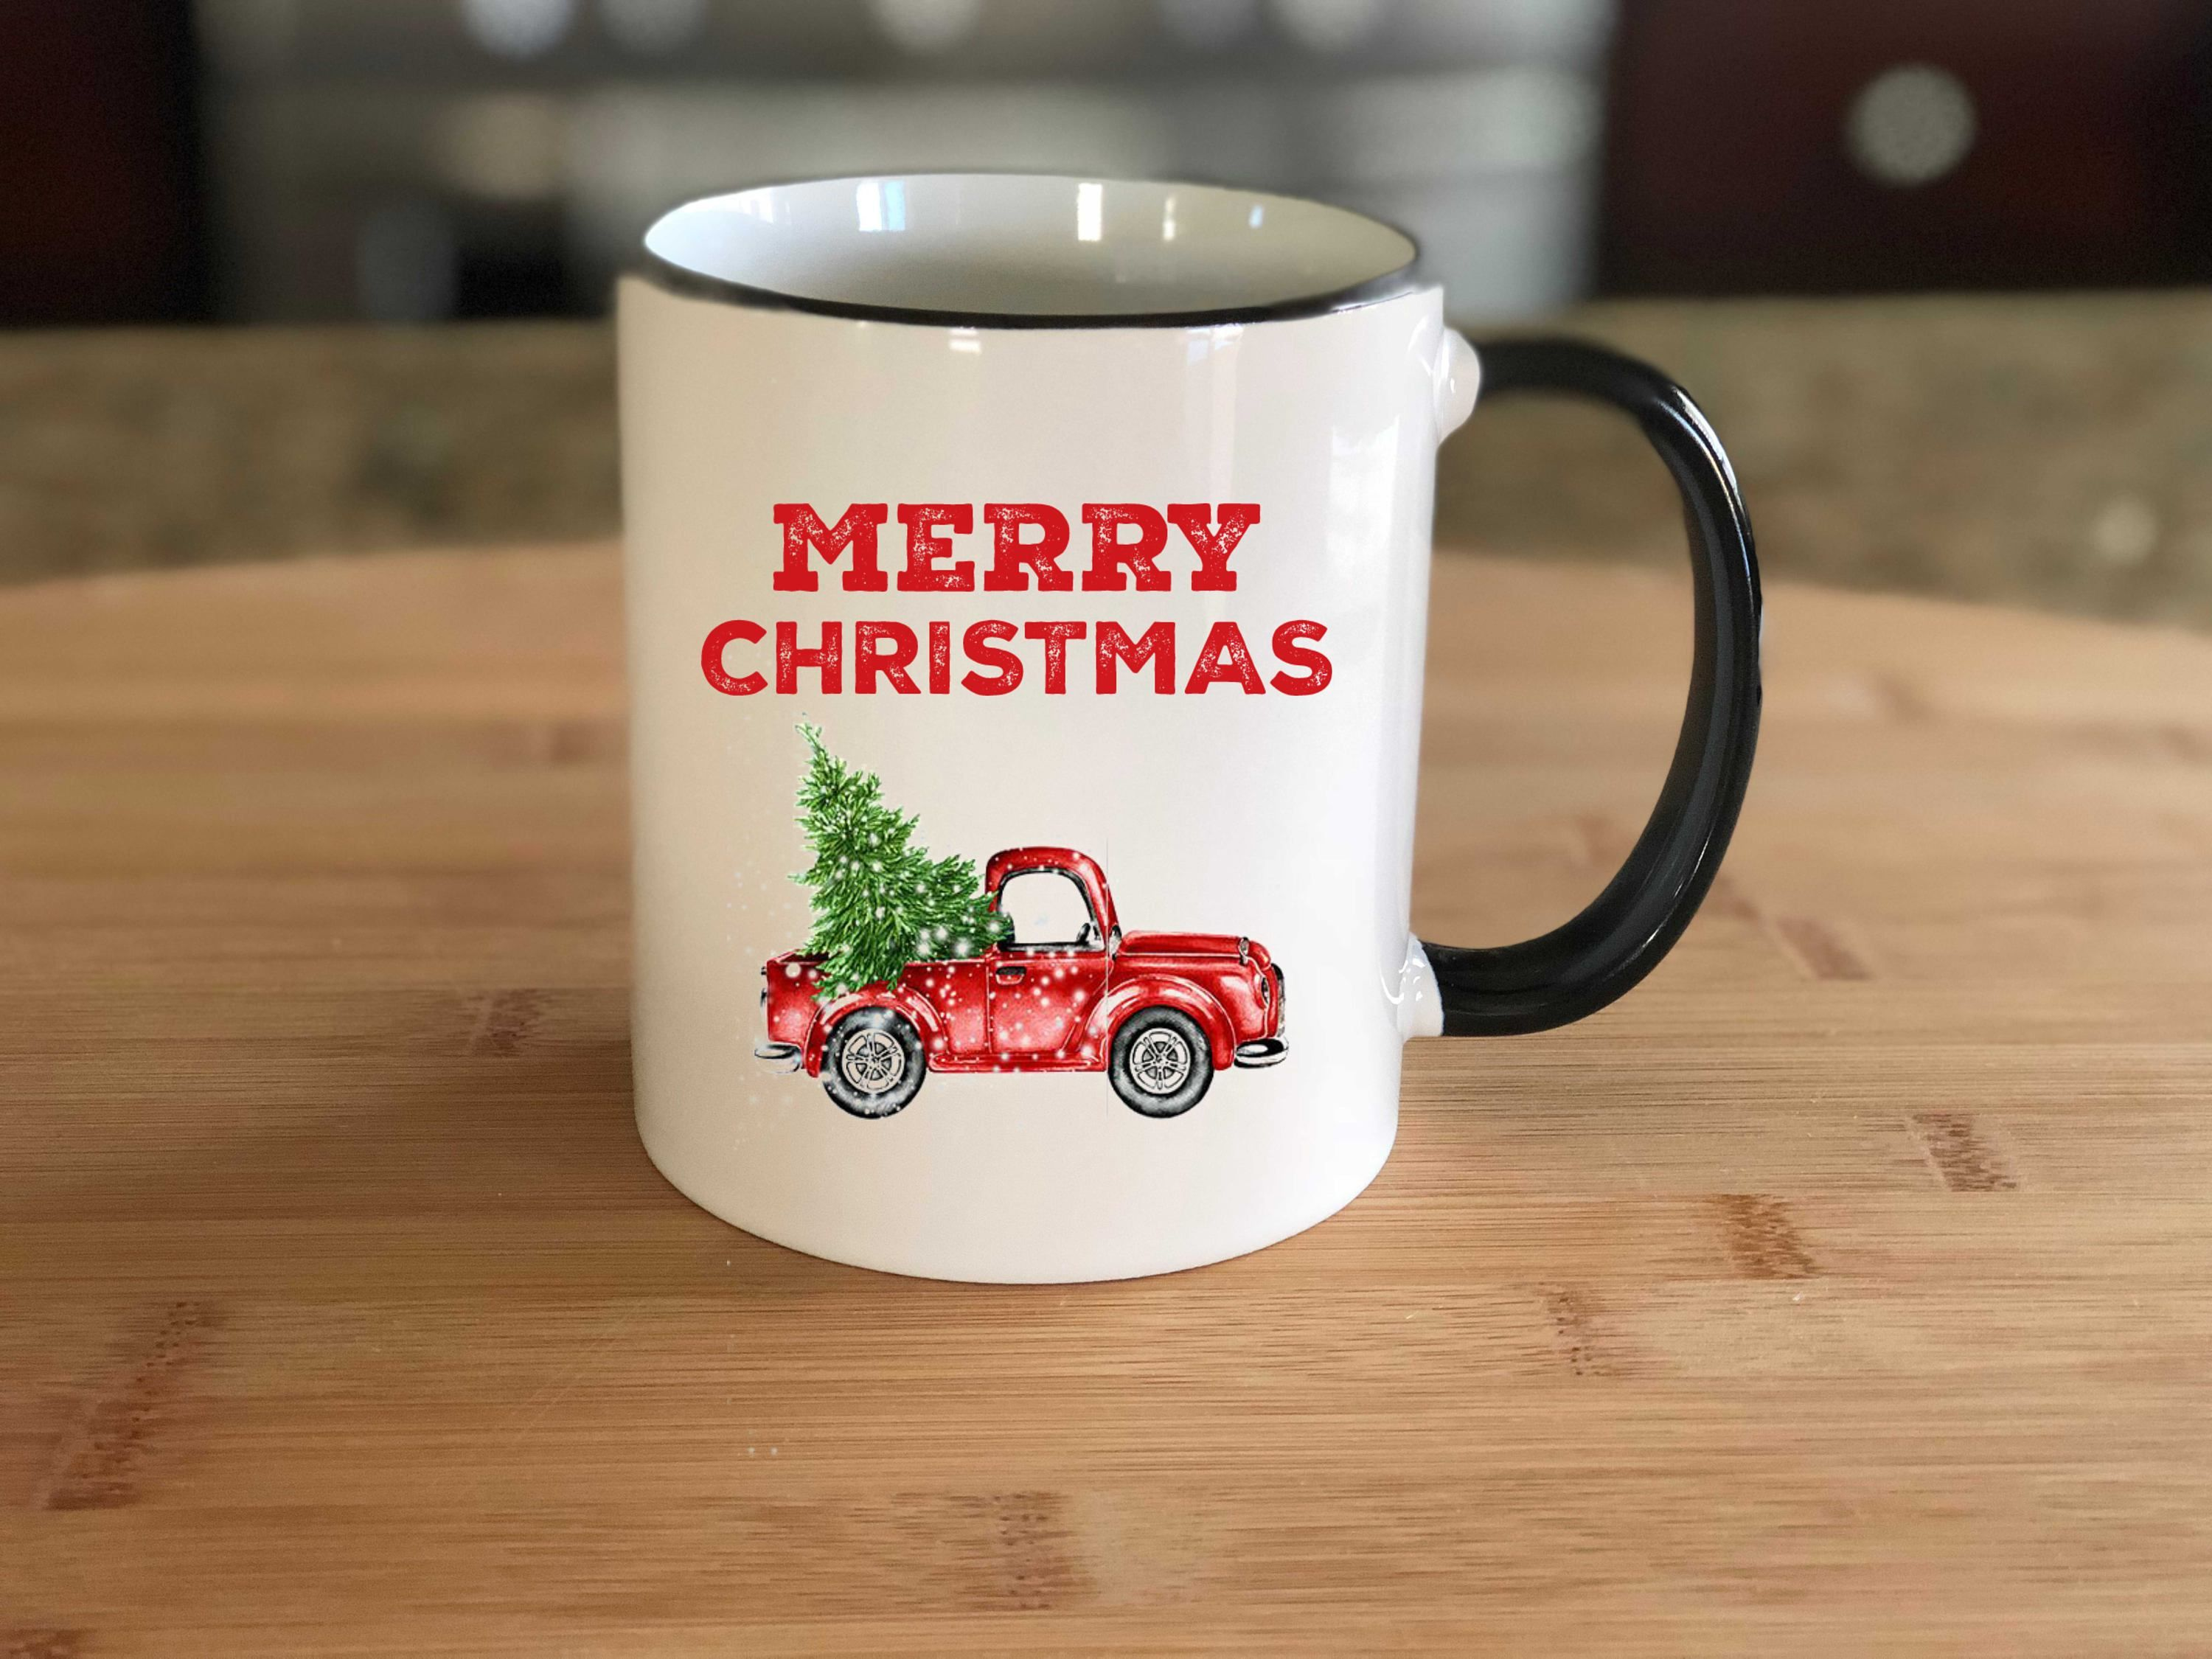 Old fashion merry christmas with red truck mugold red truck